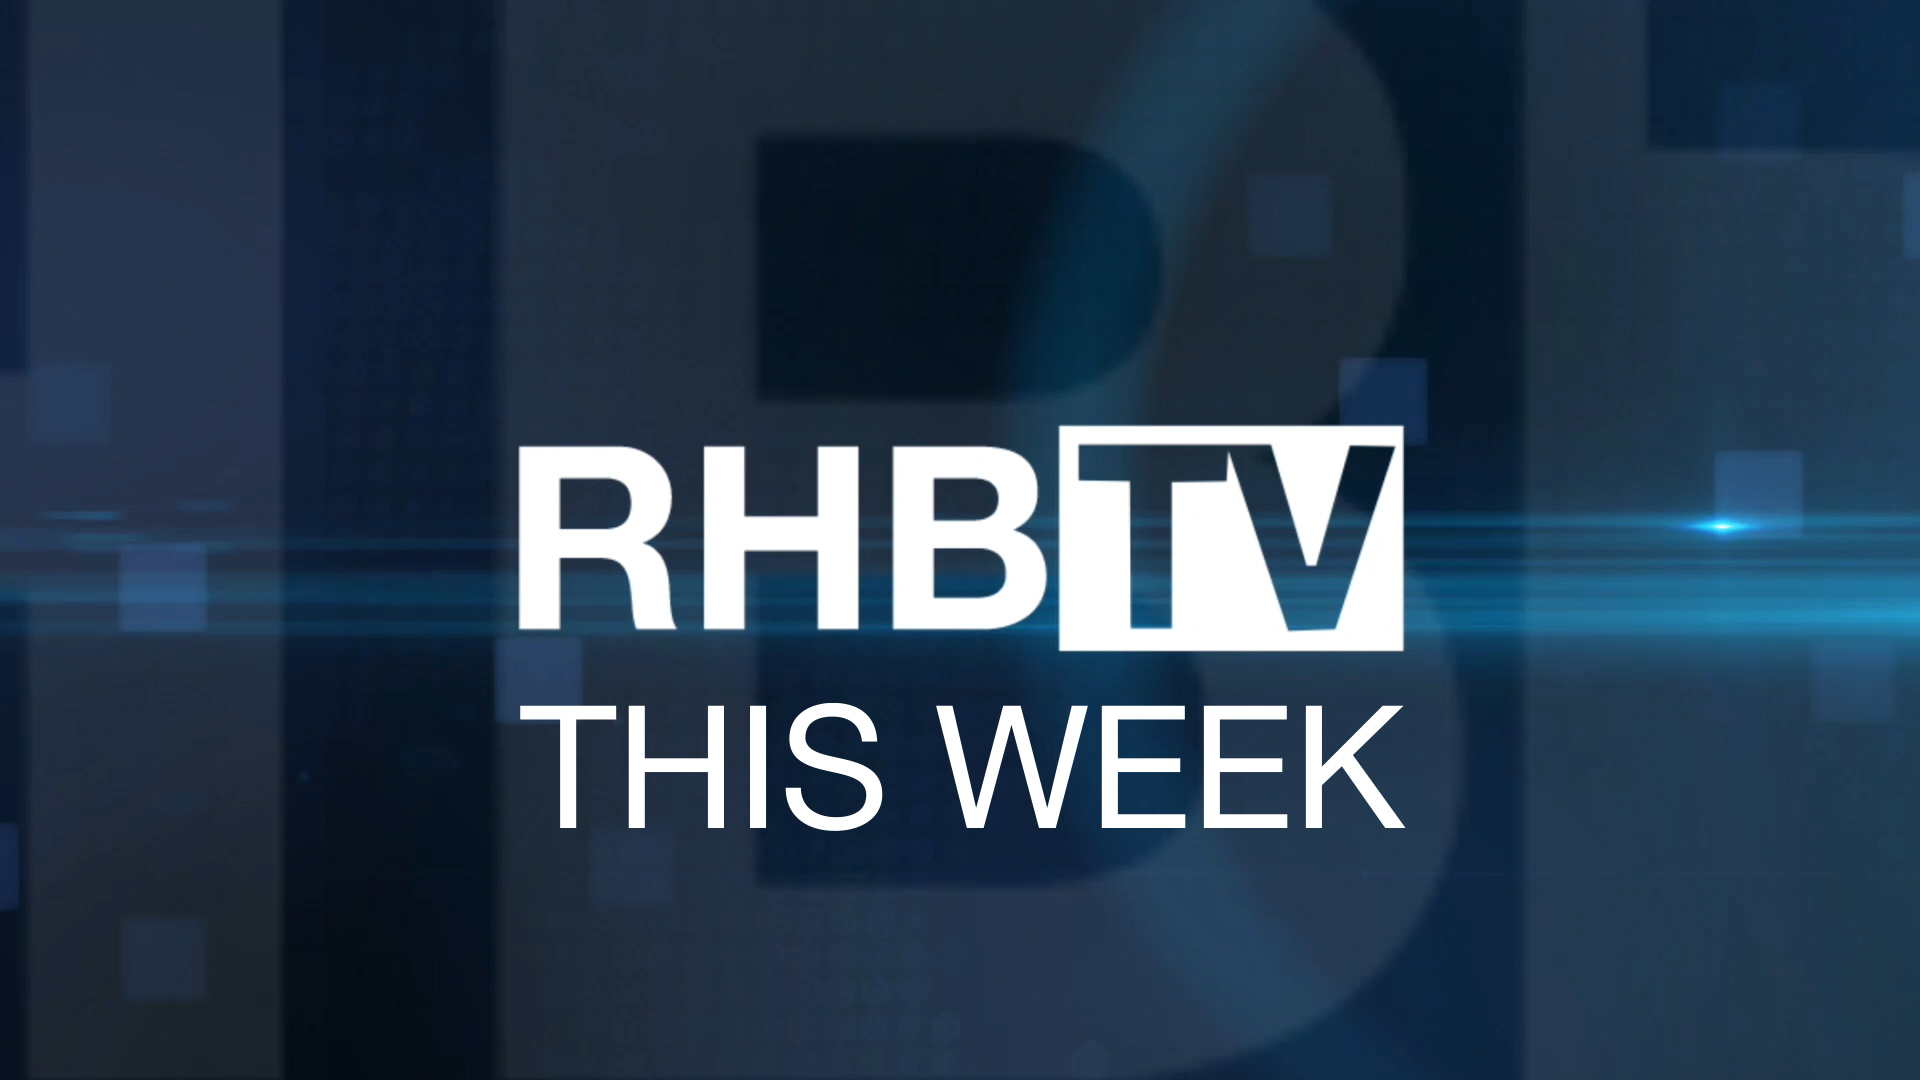 RHB TV SEASON 2 EPISODE 1